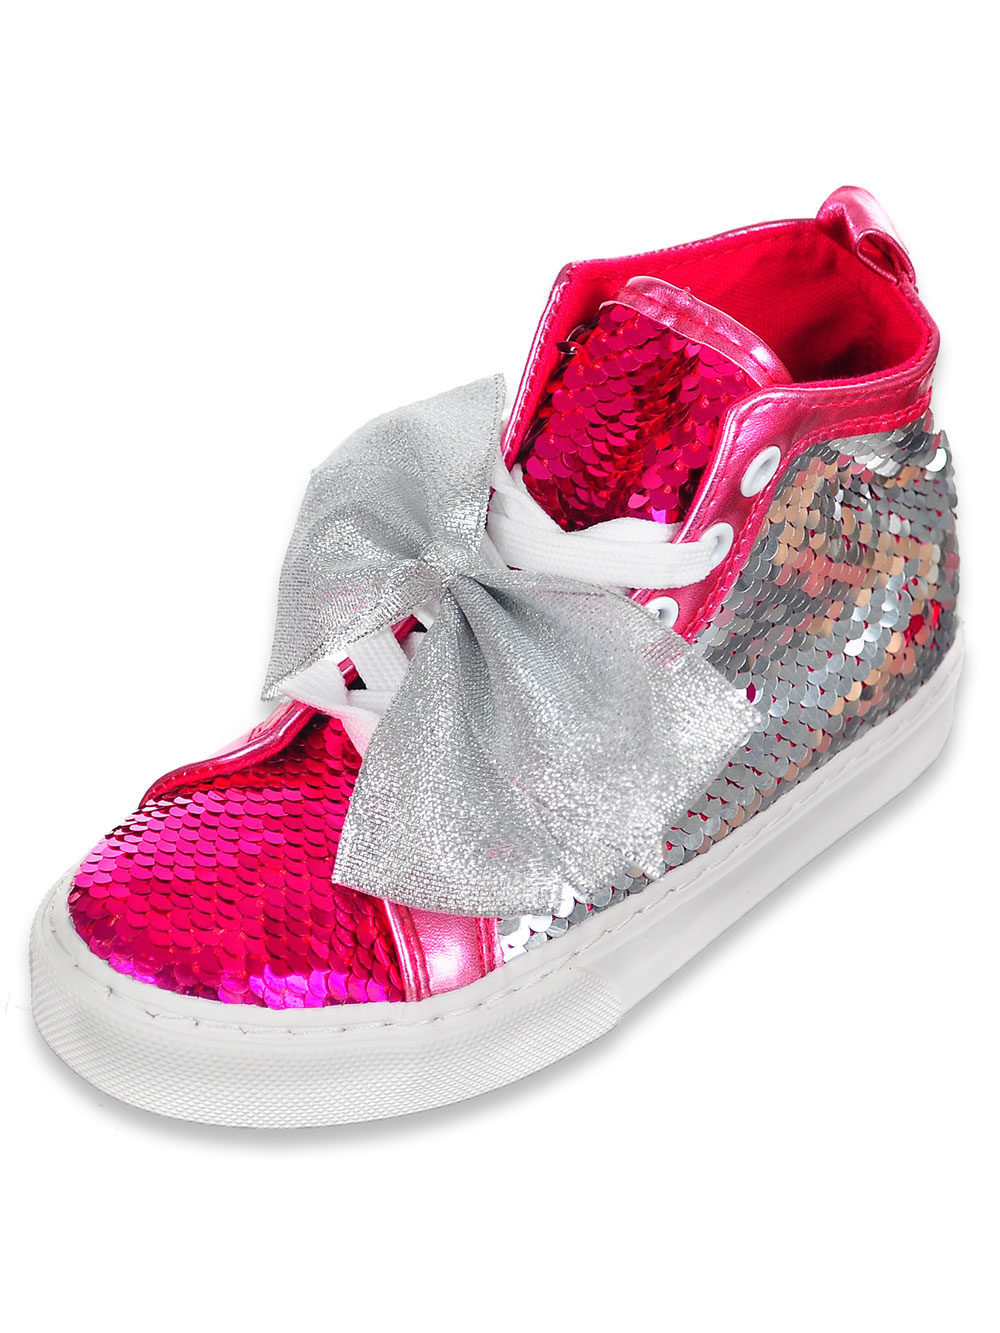 Girls Hi Top Sneakers By Jojo Siwa In Pink Silver From Cookie S Kids